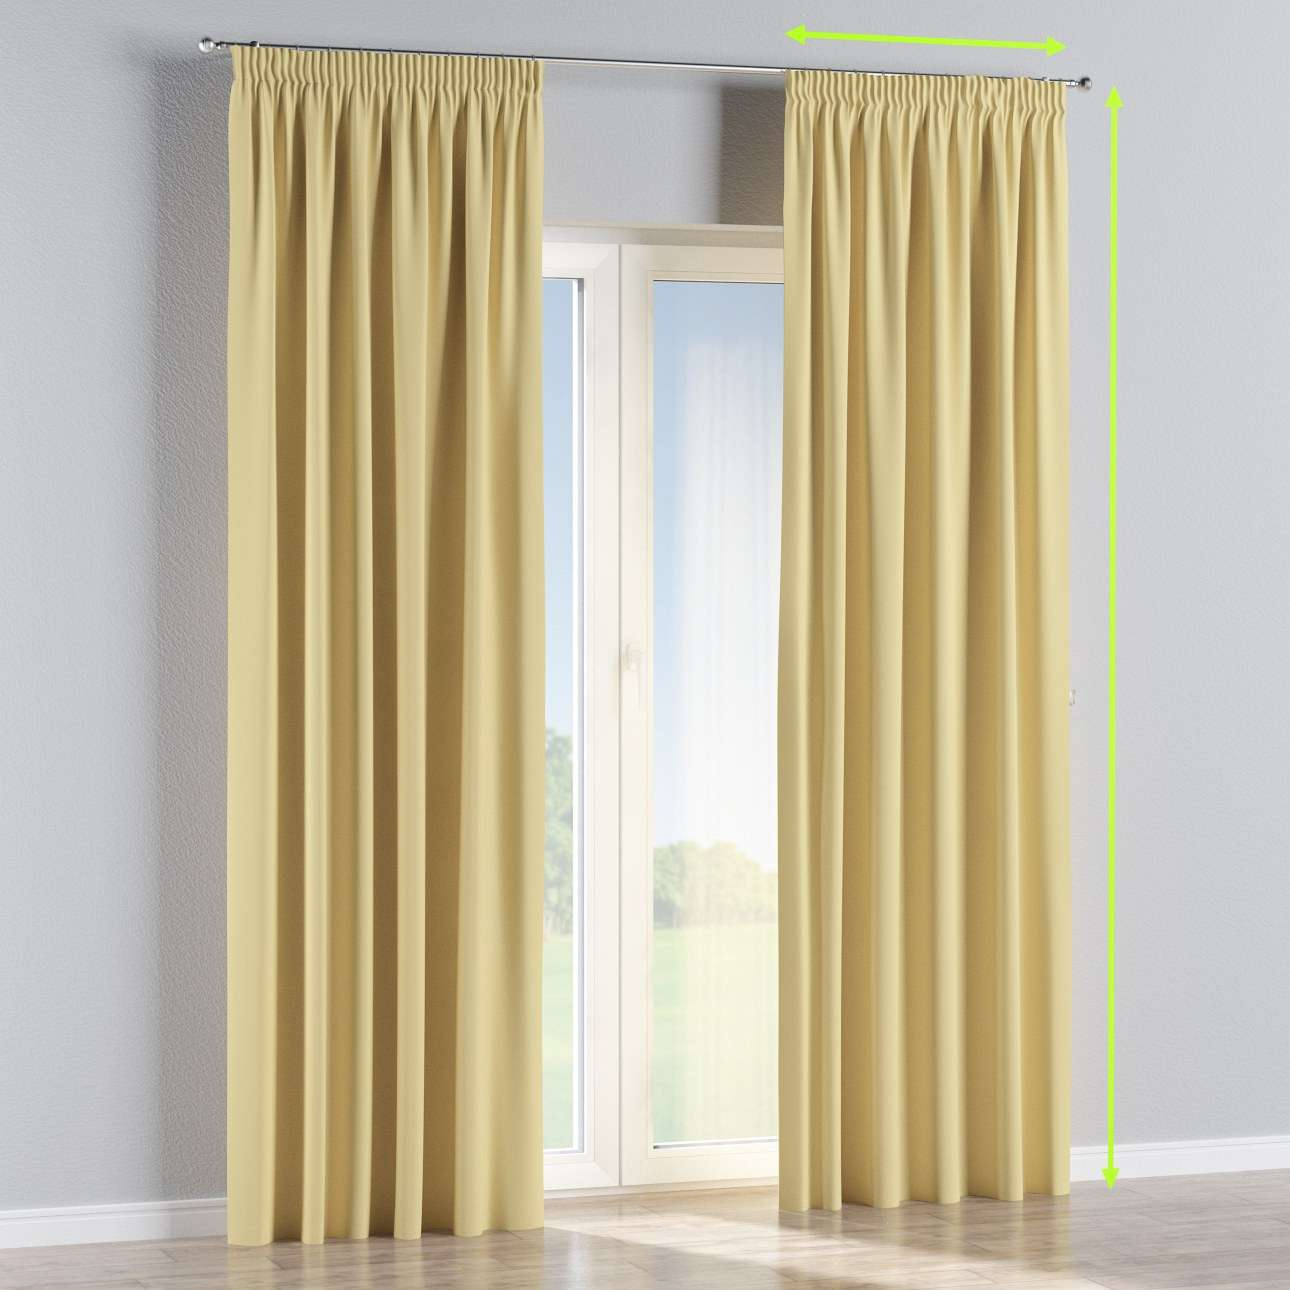 Pencil pleat curtains in collection Blackout, fabric: 269-12